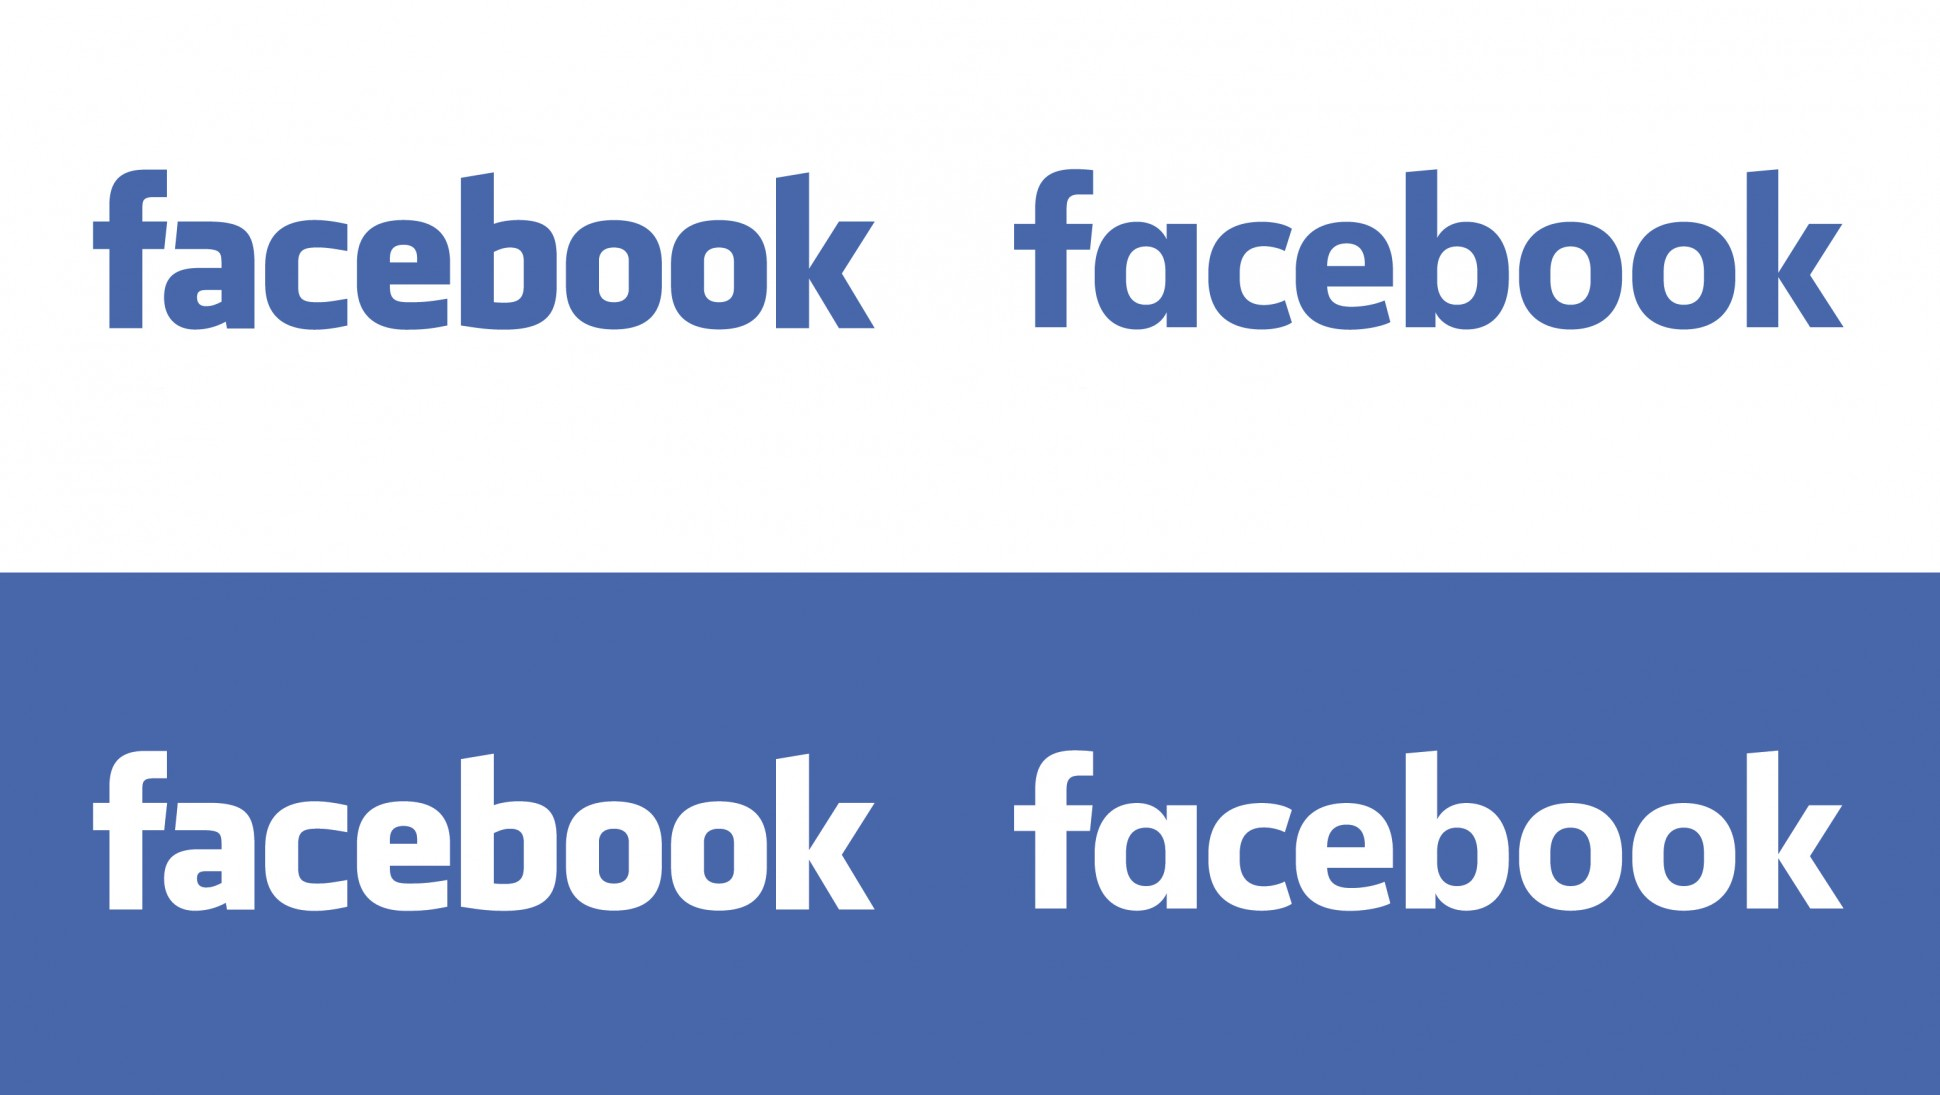 Facebook It: Facebook HD Wallpapers Free Download